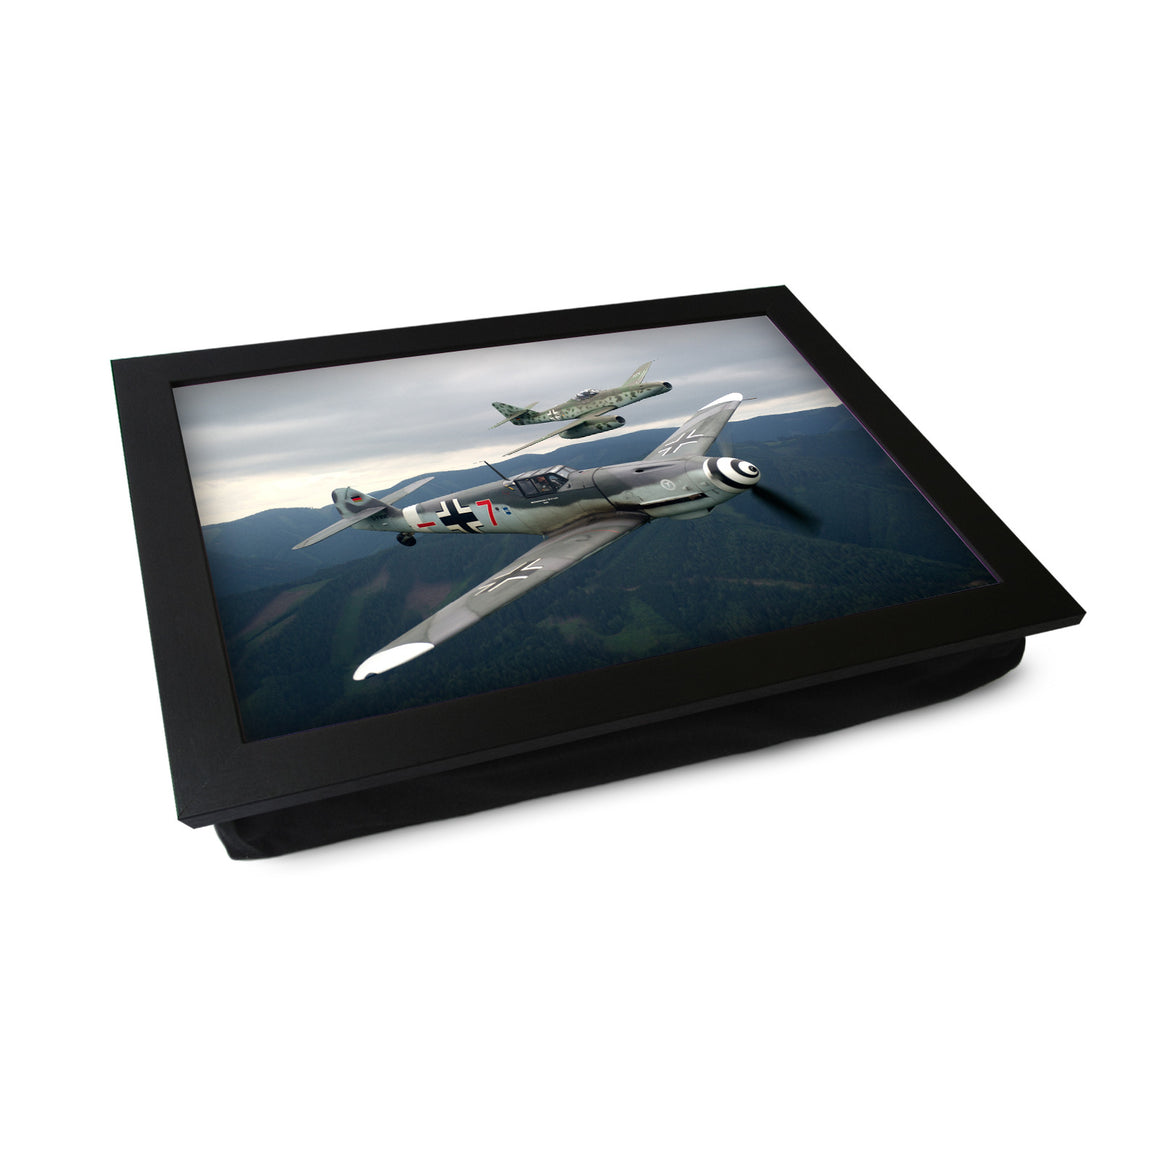 Military Planes Lap Tray - L0422